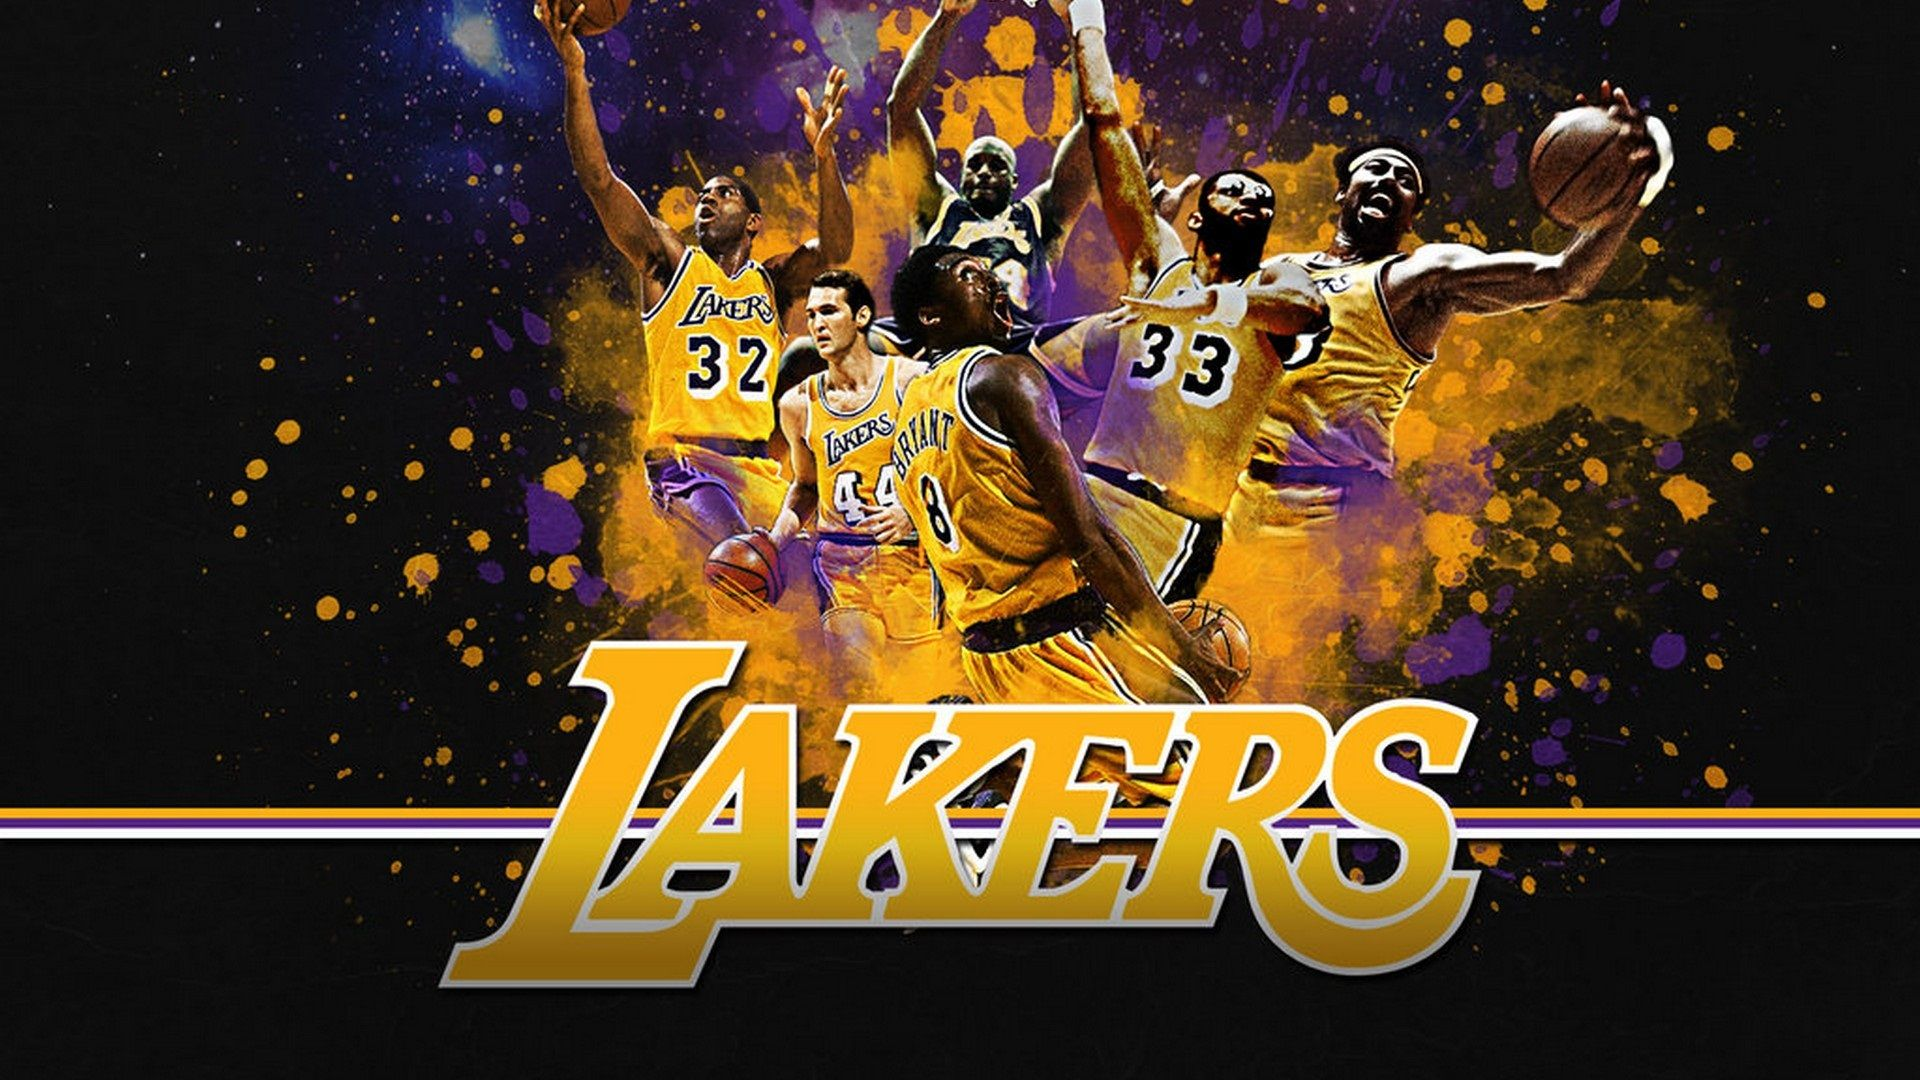 Hd Backgrounds Los Angeles Lakers Lakers Wallpaper Los Angeles Lakers Lakers